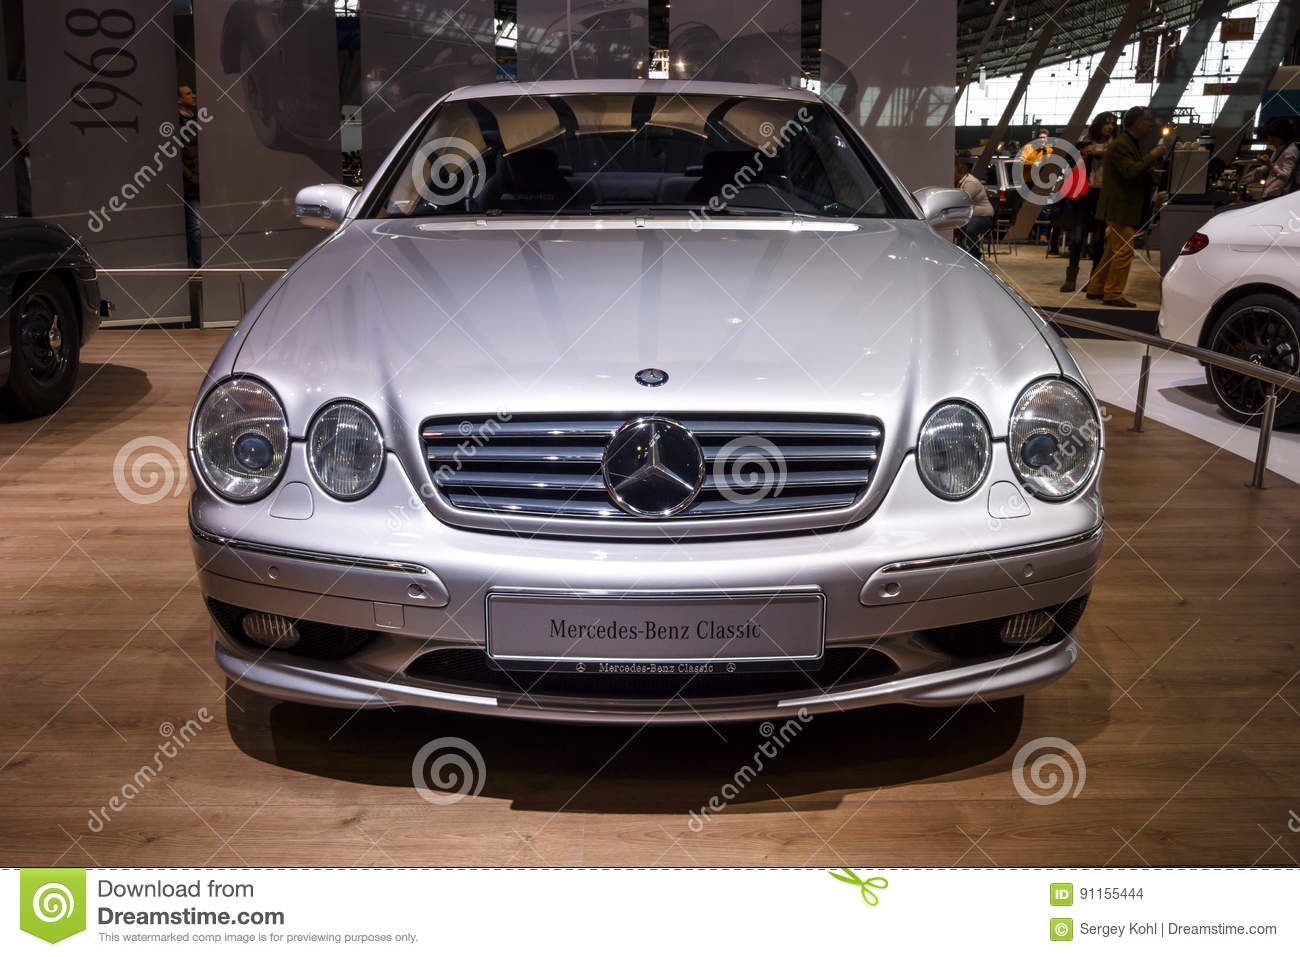 Large Luxury Grand Tourer Car Mercedes Benz Cl 55 Amg F1 Limited S Stuttgart Germany March 03 2017 Edition C215 2001 Europes Greatest Classic